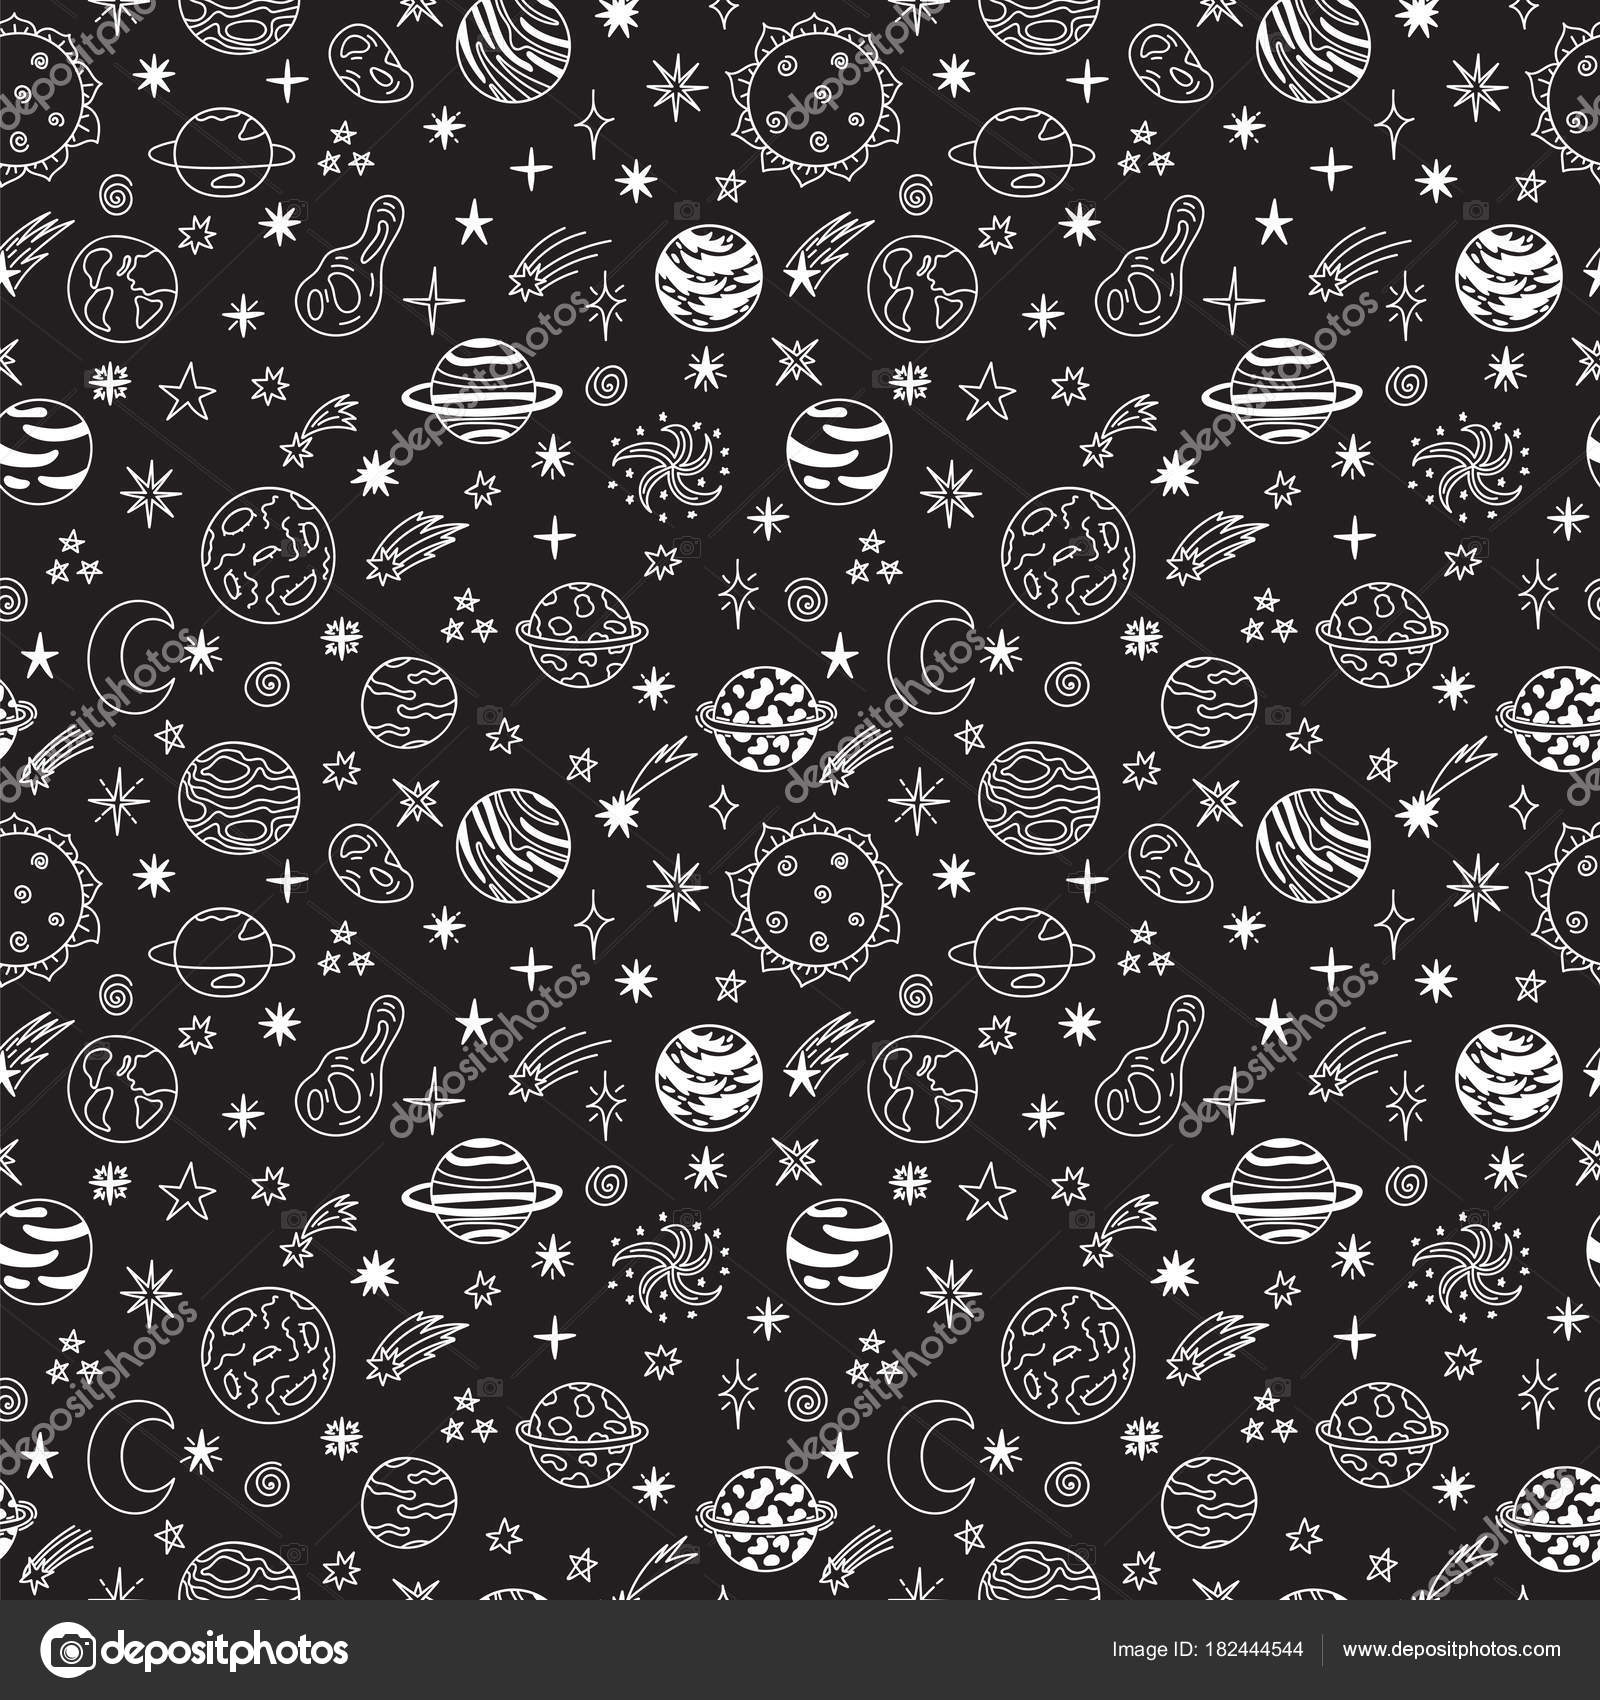 Doodle Space Seamless Pattern Cute Hand Drawn Childish